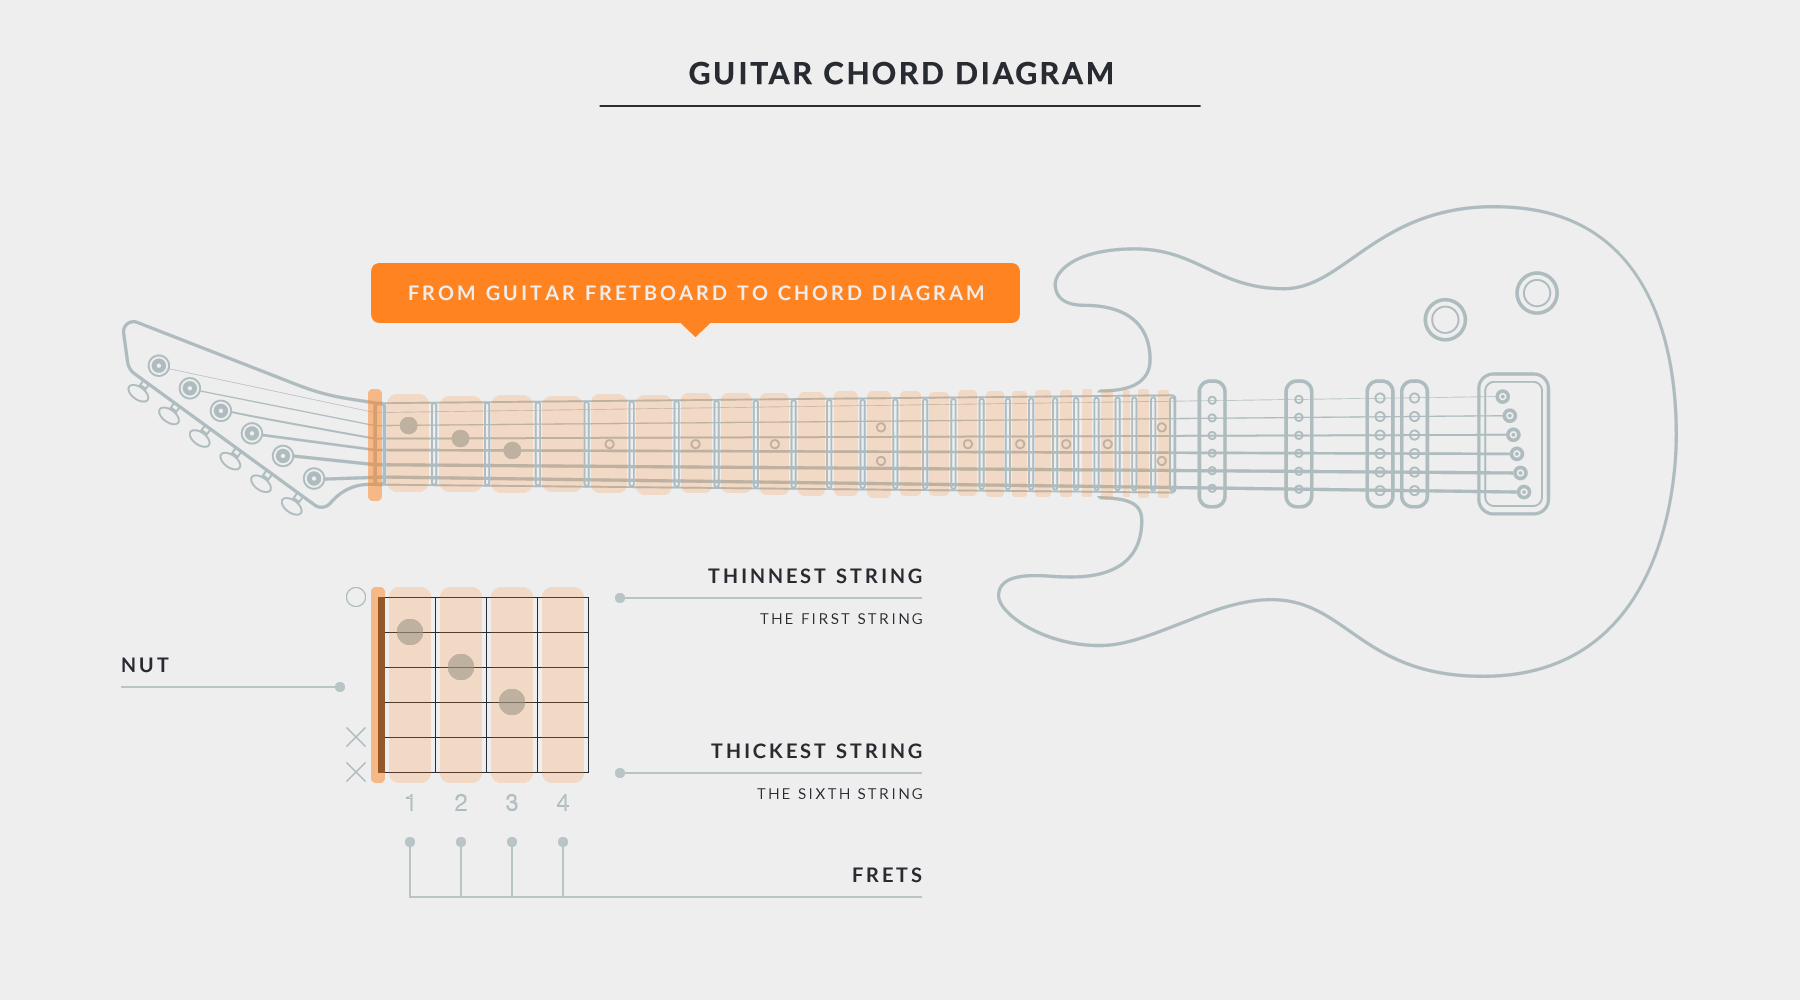 Get Started With Uberchord For Beginners How To Read Guitar Chord Diagrams Learn Play Music Getting Diagram Explaining Fretboard And Chart